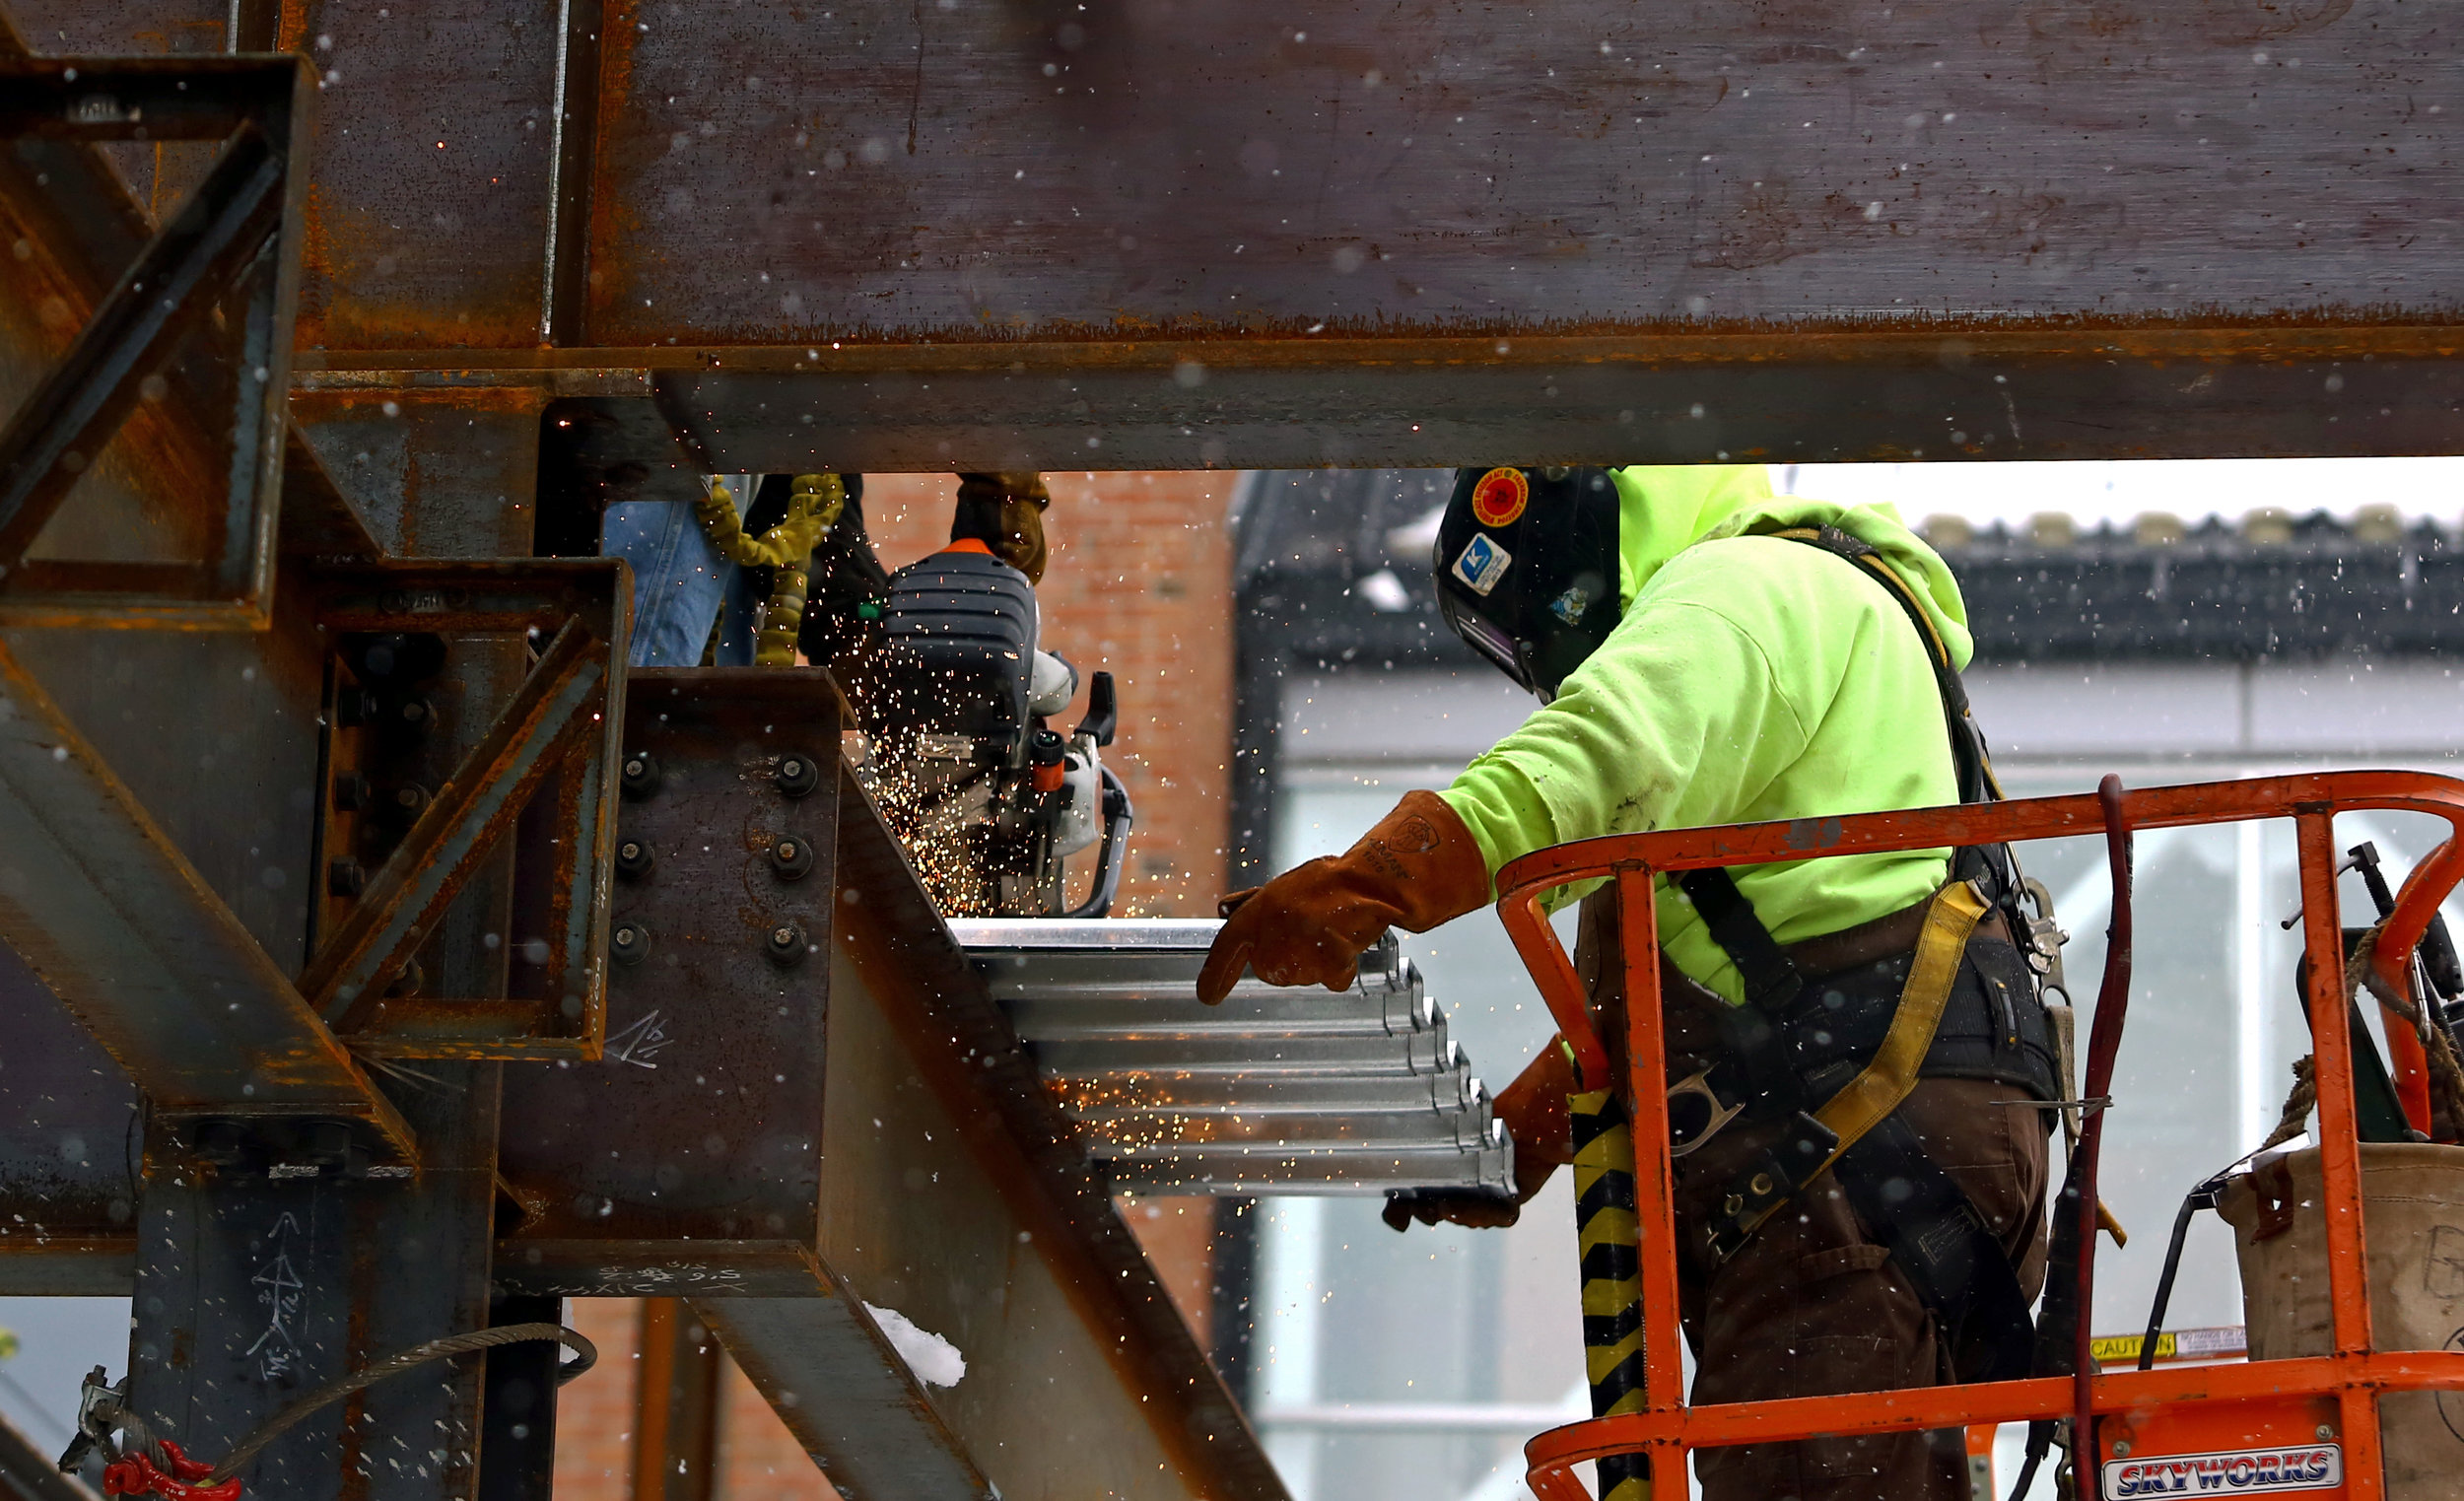 Adam Wilbur, left, of Toledo and Robert Bacon, right, work on cutting sections of roofing for the new emergency wing under construction at Mercy St. Vincent Hospital on Cherry Street in Toledo, Oh. on Tuesday, Dec. 13, 2016.